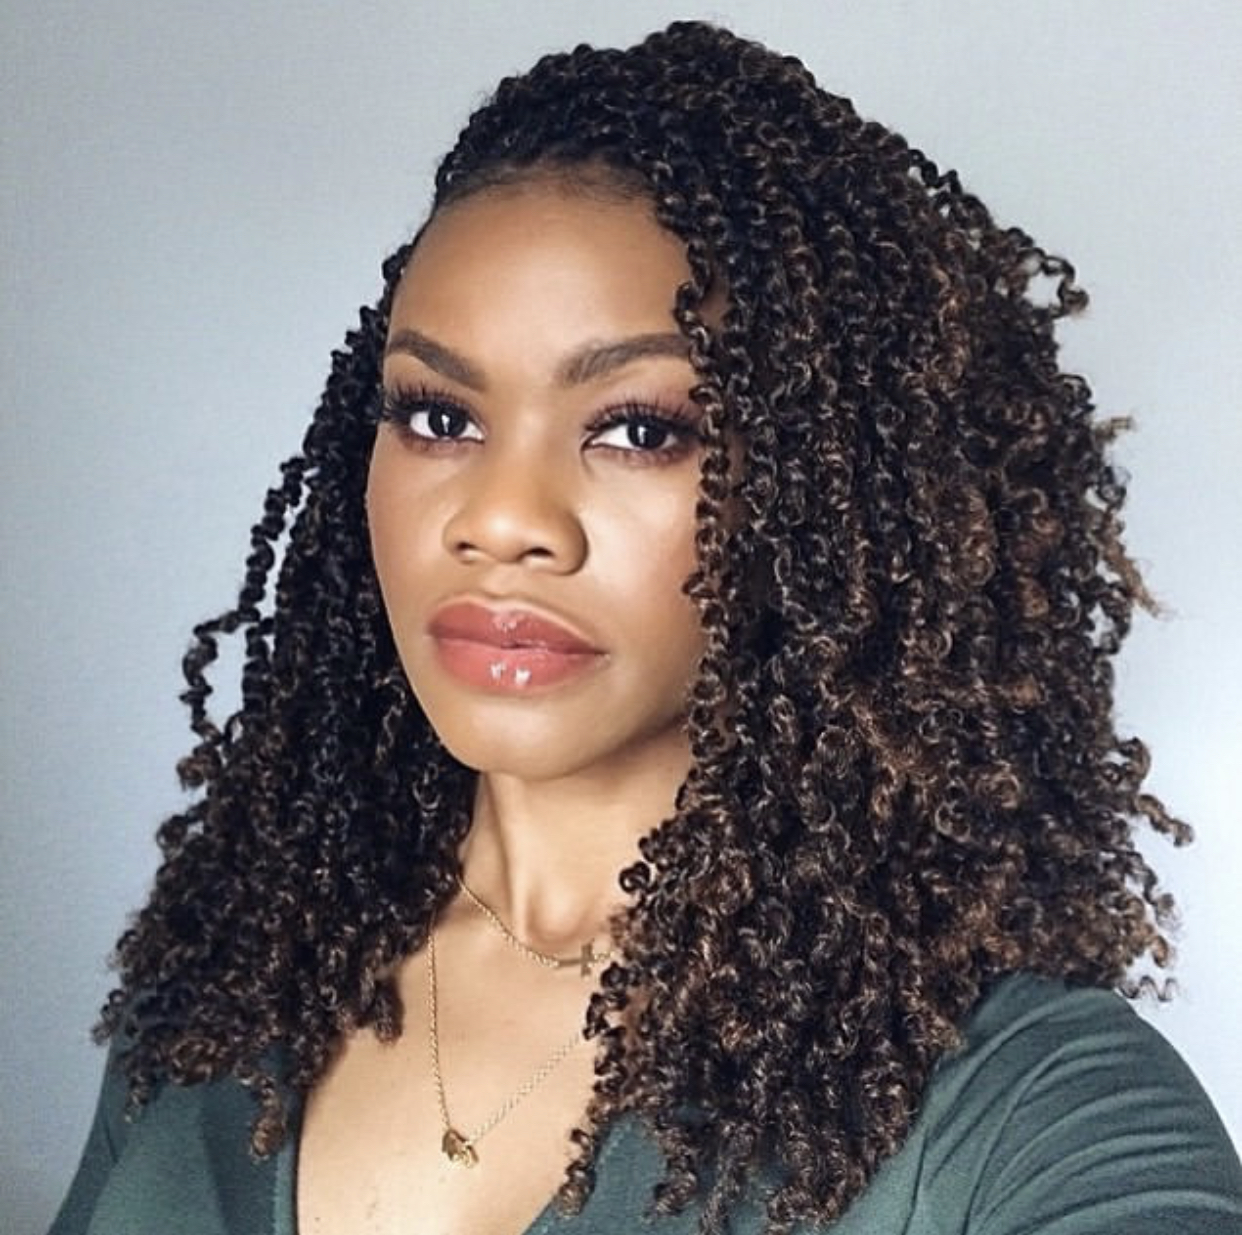 Passion Twists Hairstyles 10 Styles To Inspire Your Next Look